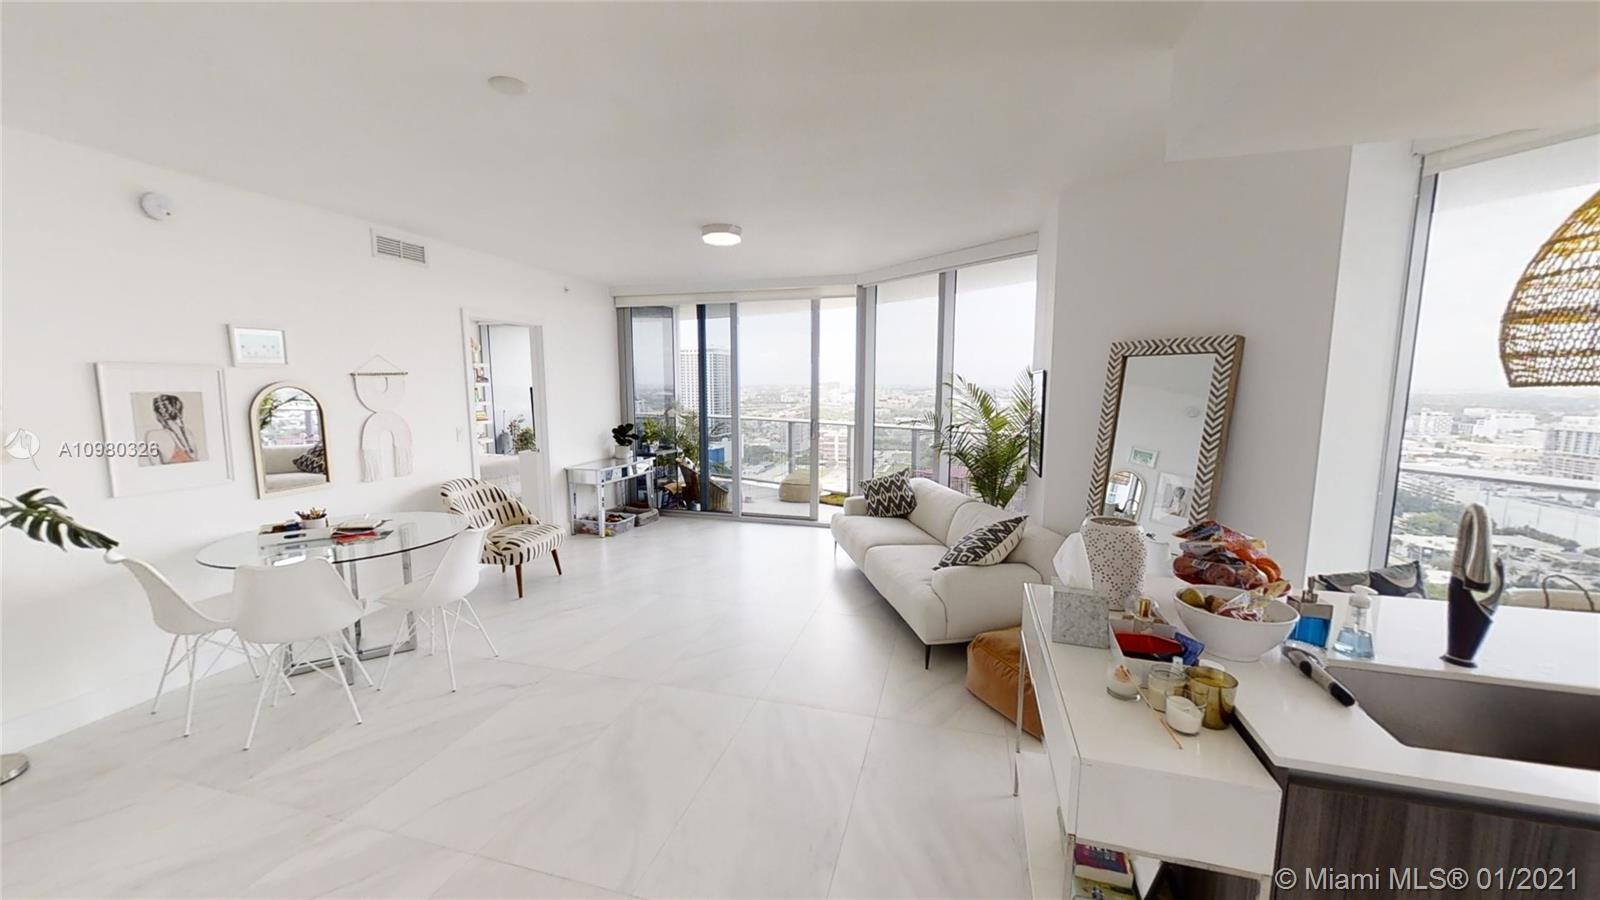 488 NE 18th St # 3001, Miami, Florida 33132, 2 Bedrooms Bedrooms, ,3 BathroomsBathrooms,Residential,For Sale,488 NE 18th St # 3001,A10980326